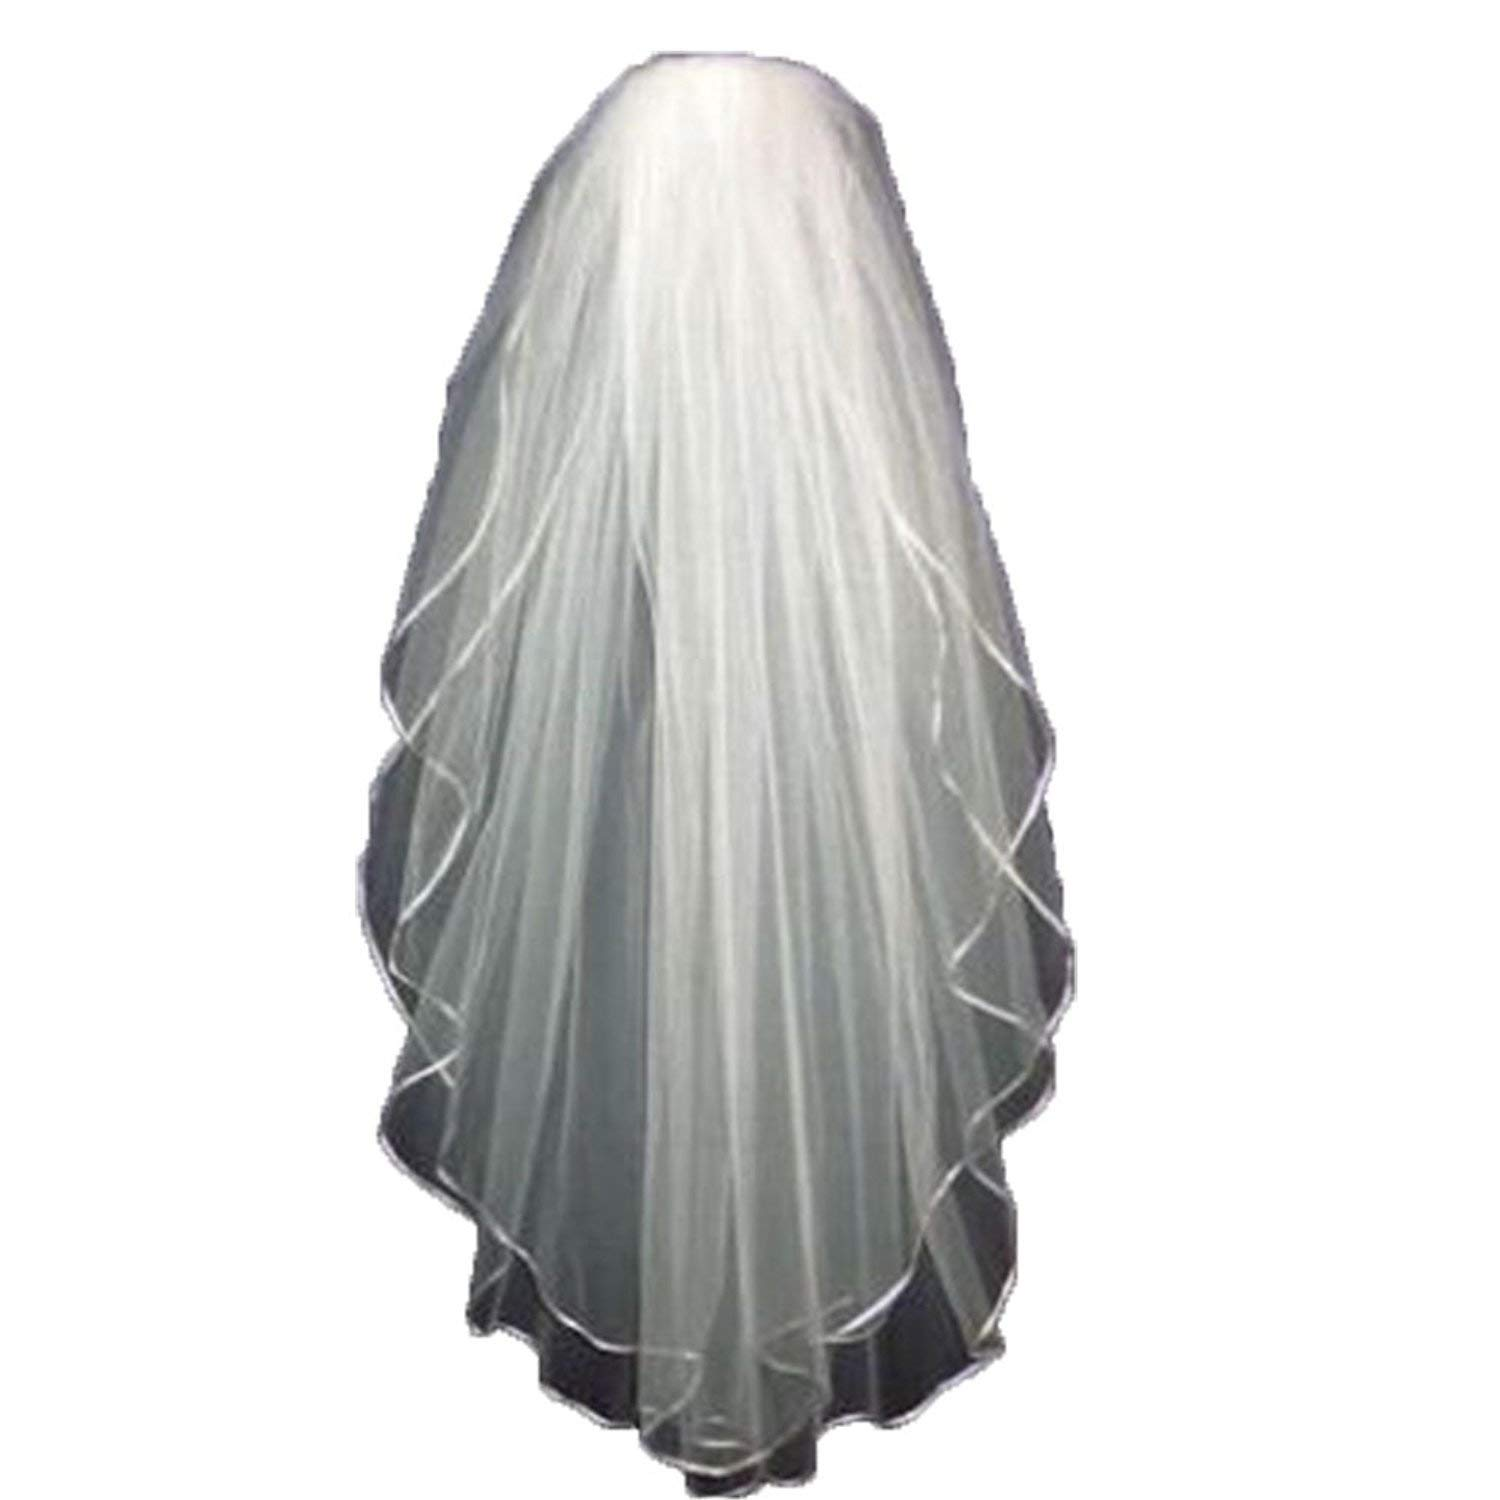 Doragrace Cheap White Ivory Short Wedding Veil for Bride - 2T 2 Tiers Ribbon Edge with comb